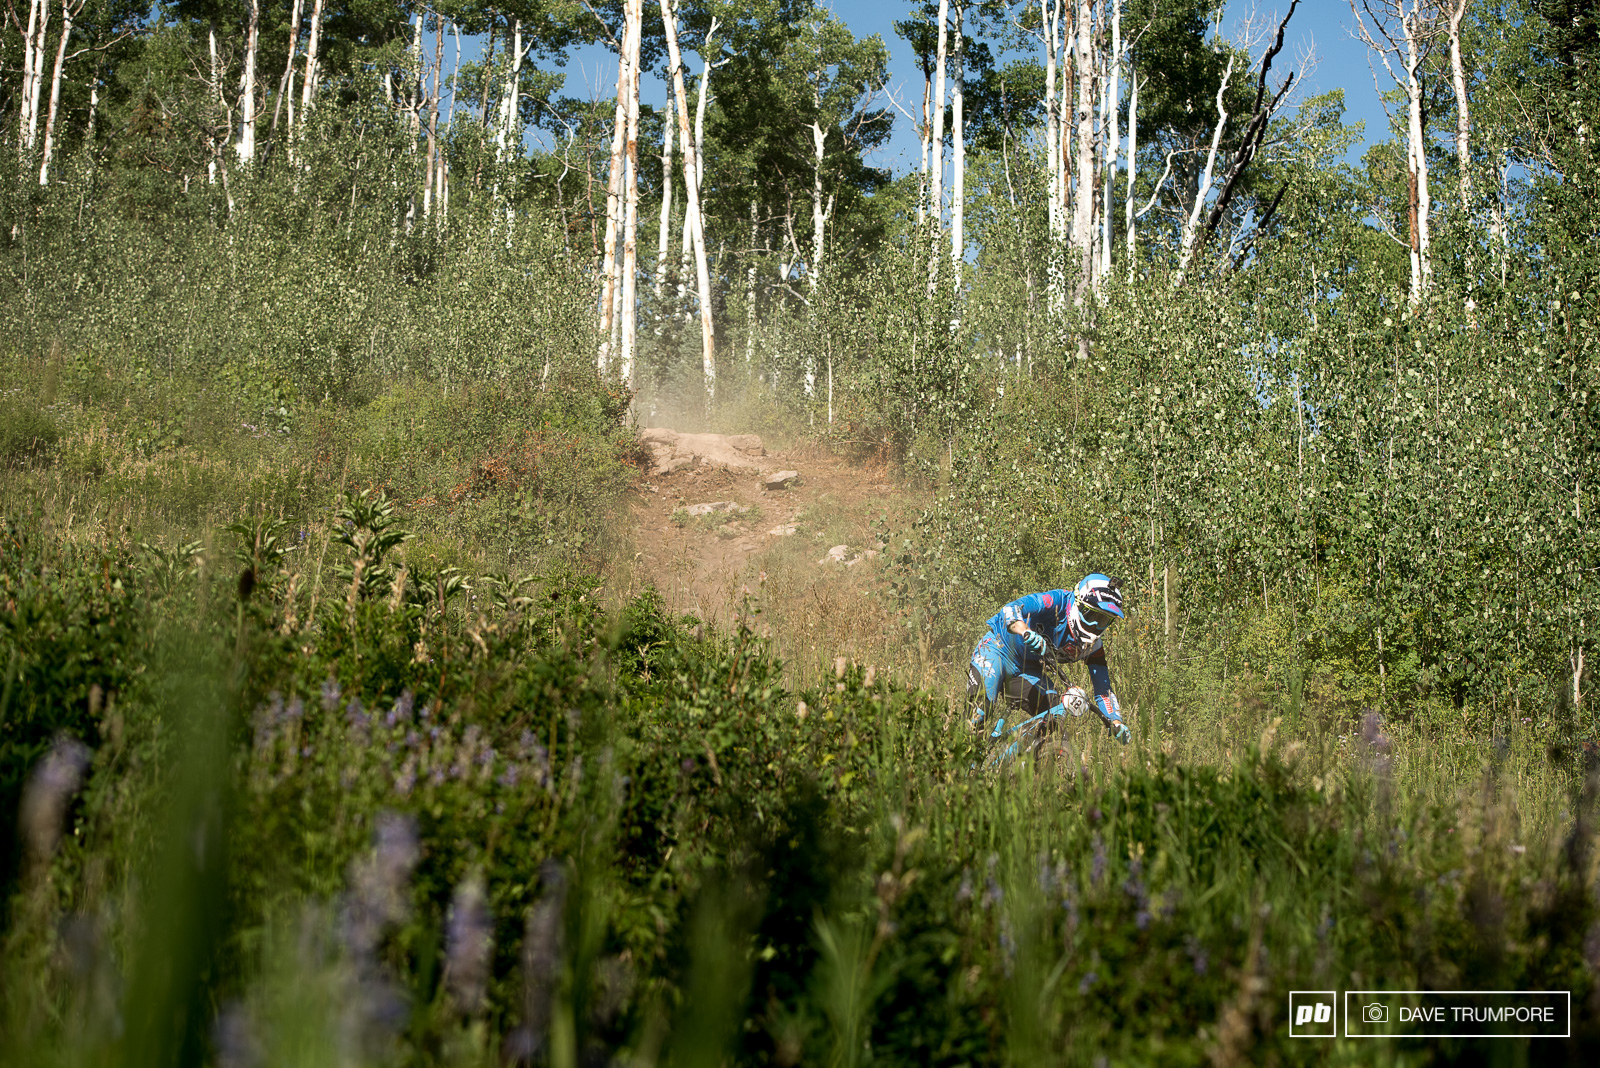 Josh Carlson comes from a moto background so the super high speed open sections play right into his strengths.